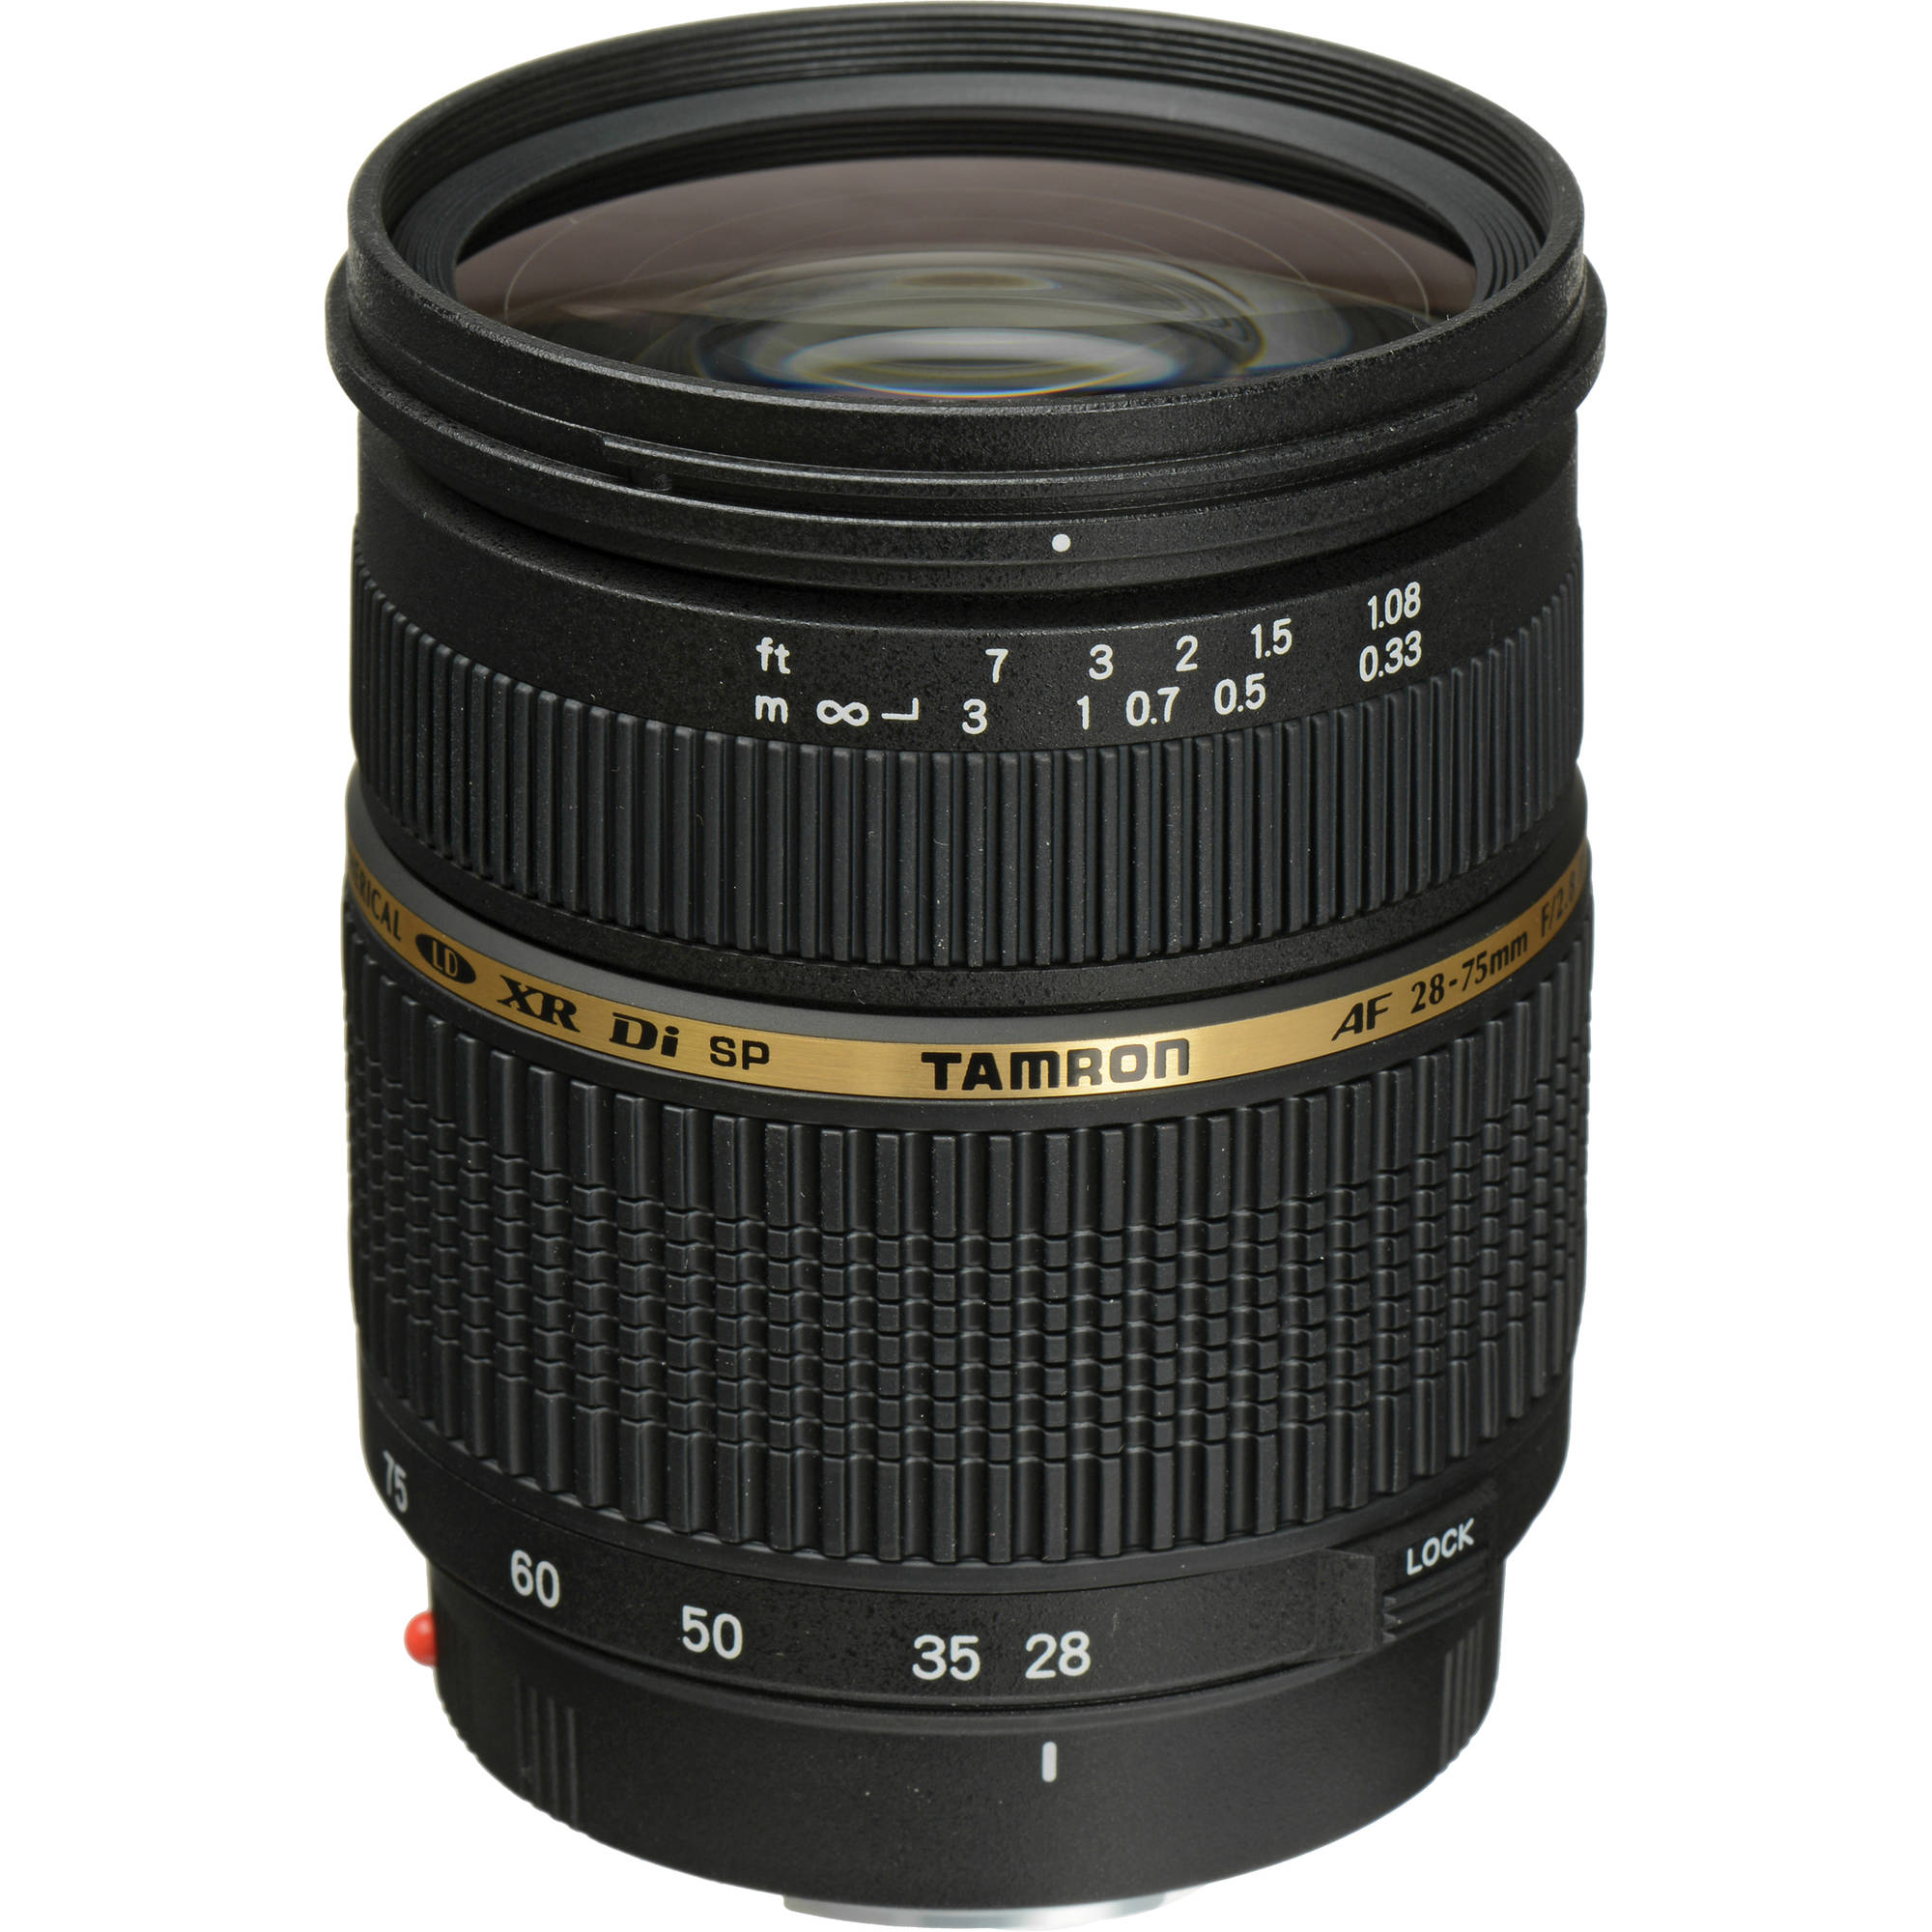 Image of Tamron SP AF 28-75mm f/2.8 Di XR LD Aspherical IF Macro Lens For Canon Mount